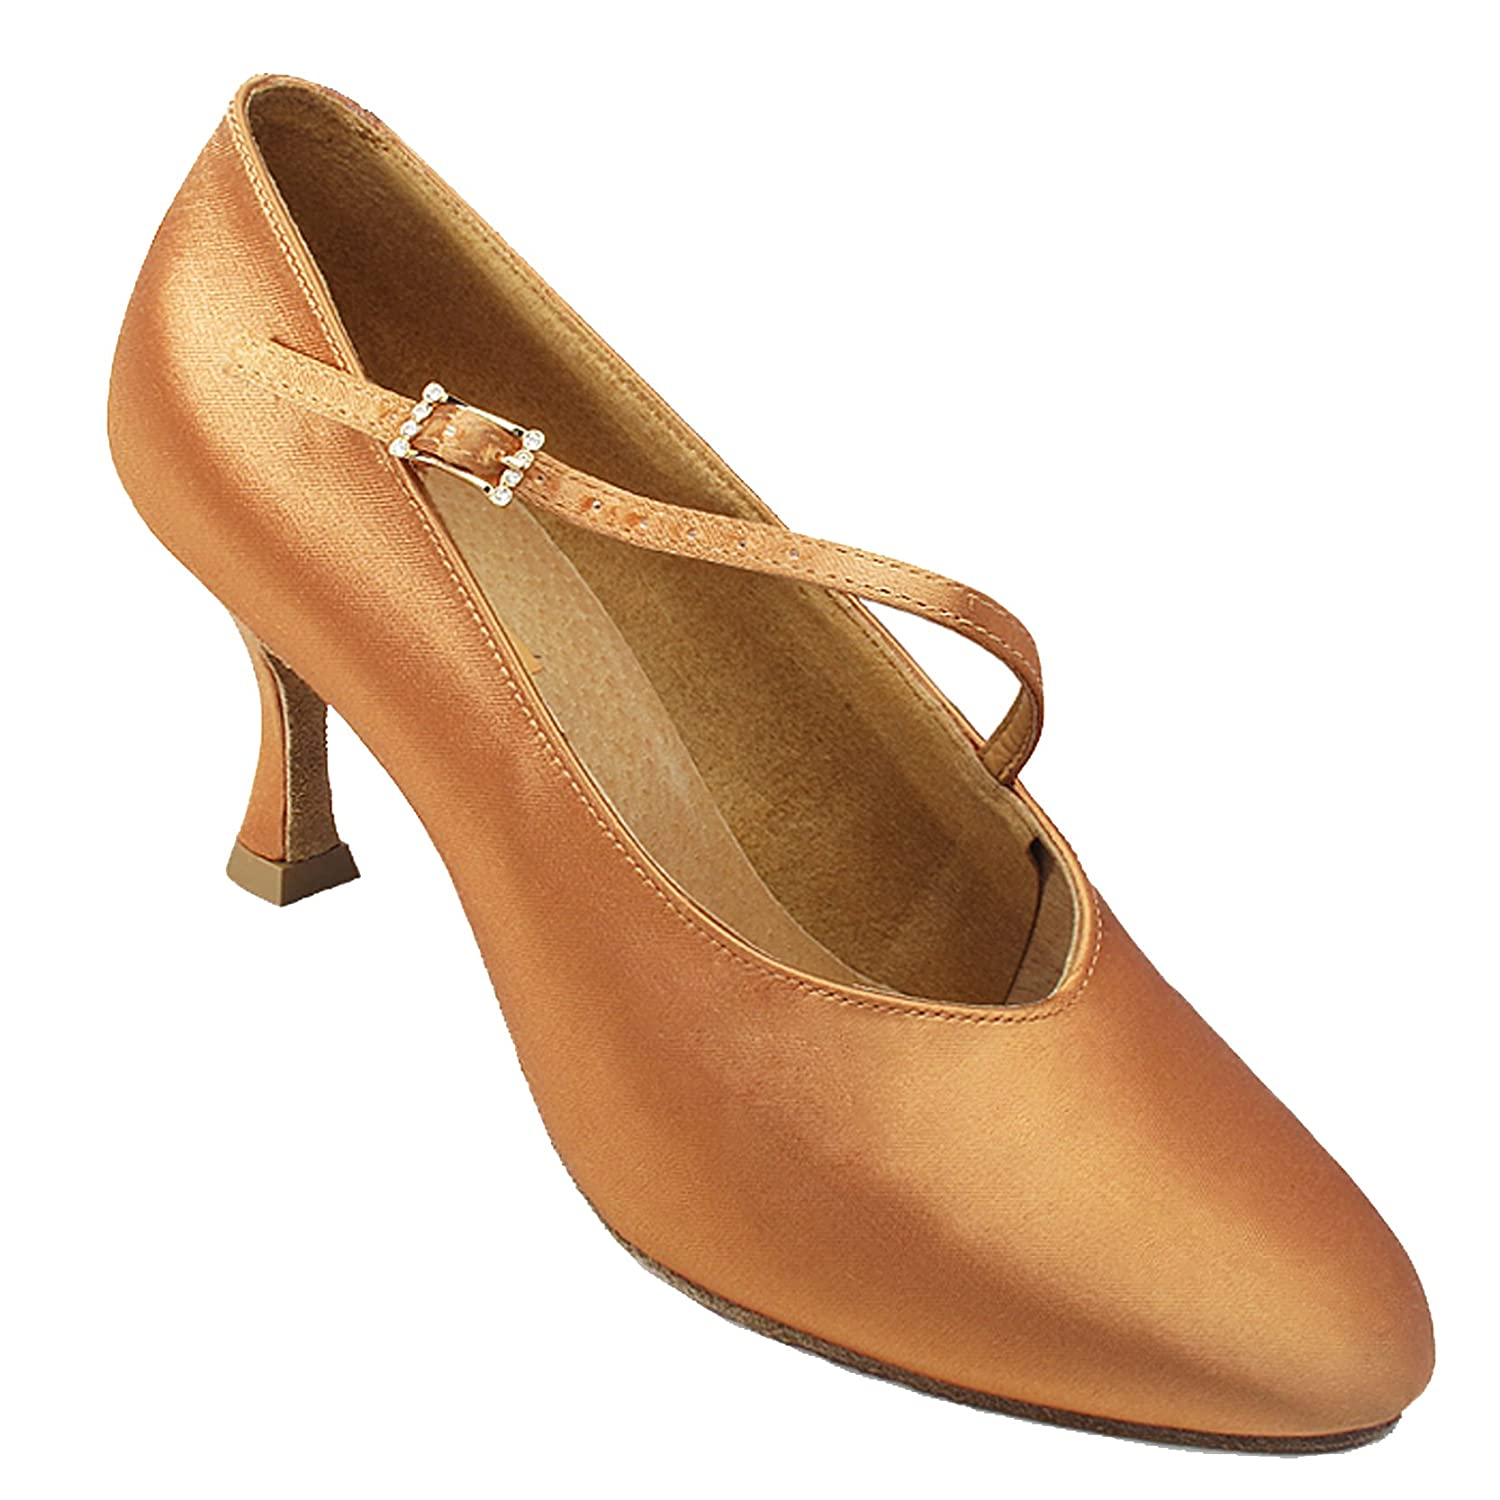 116 Ray Rose Rockslide Smooth Ballroom Women's Dance Shoes